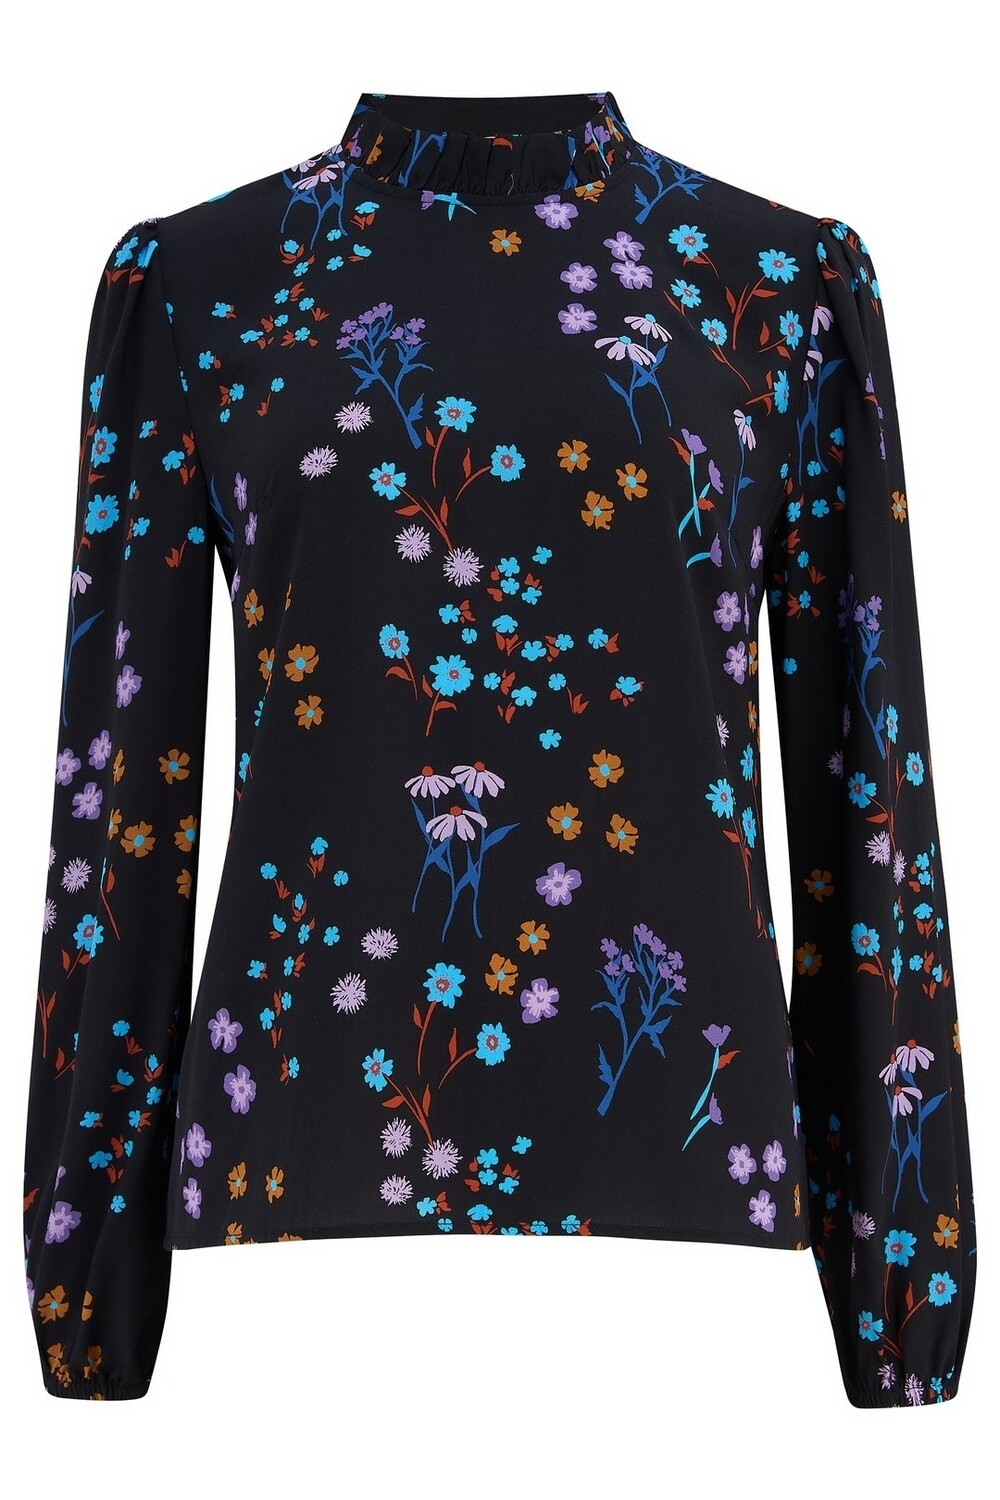 Maybell Black Floral Frill Neck Blouse